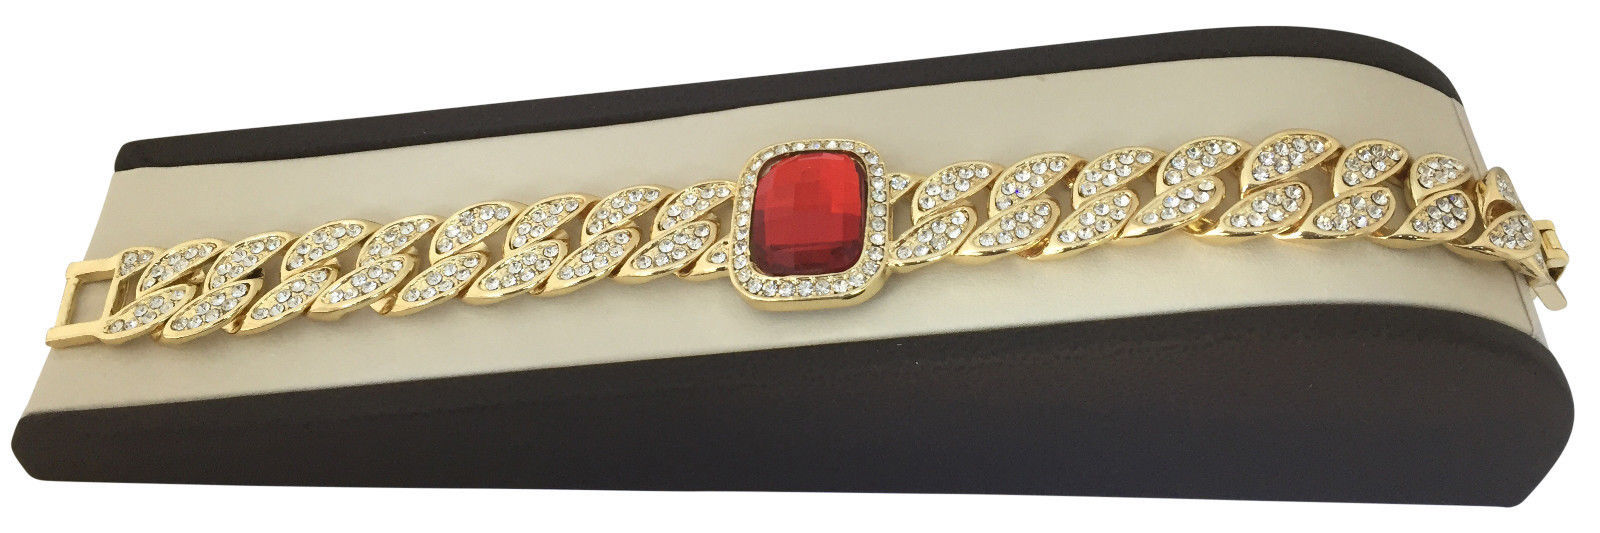 Mens Large 14K Gold GP Cuban Link Iced CZ Red Ruby 16mm Jewelry Bracelet 8.5""